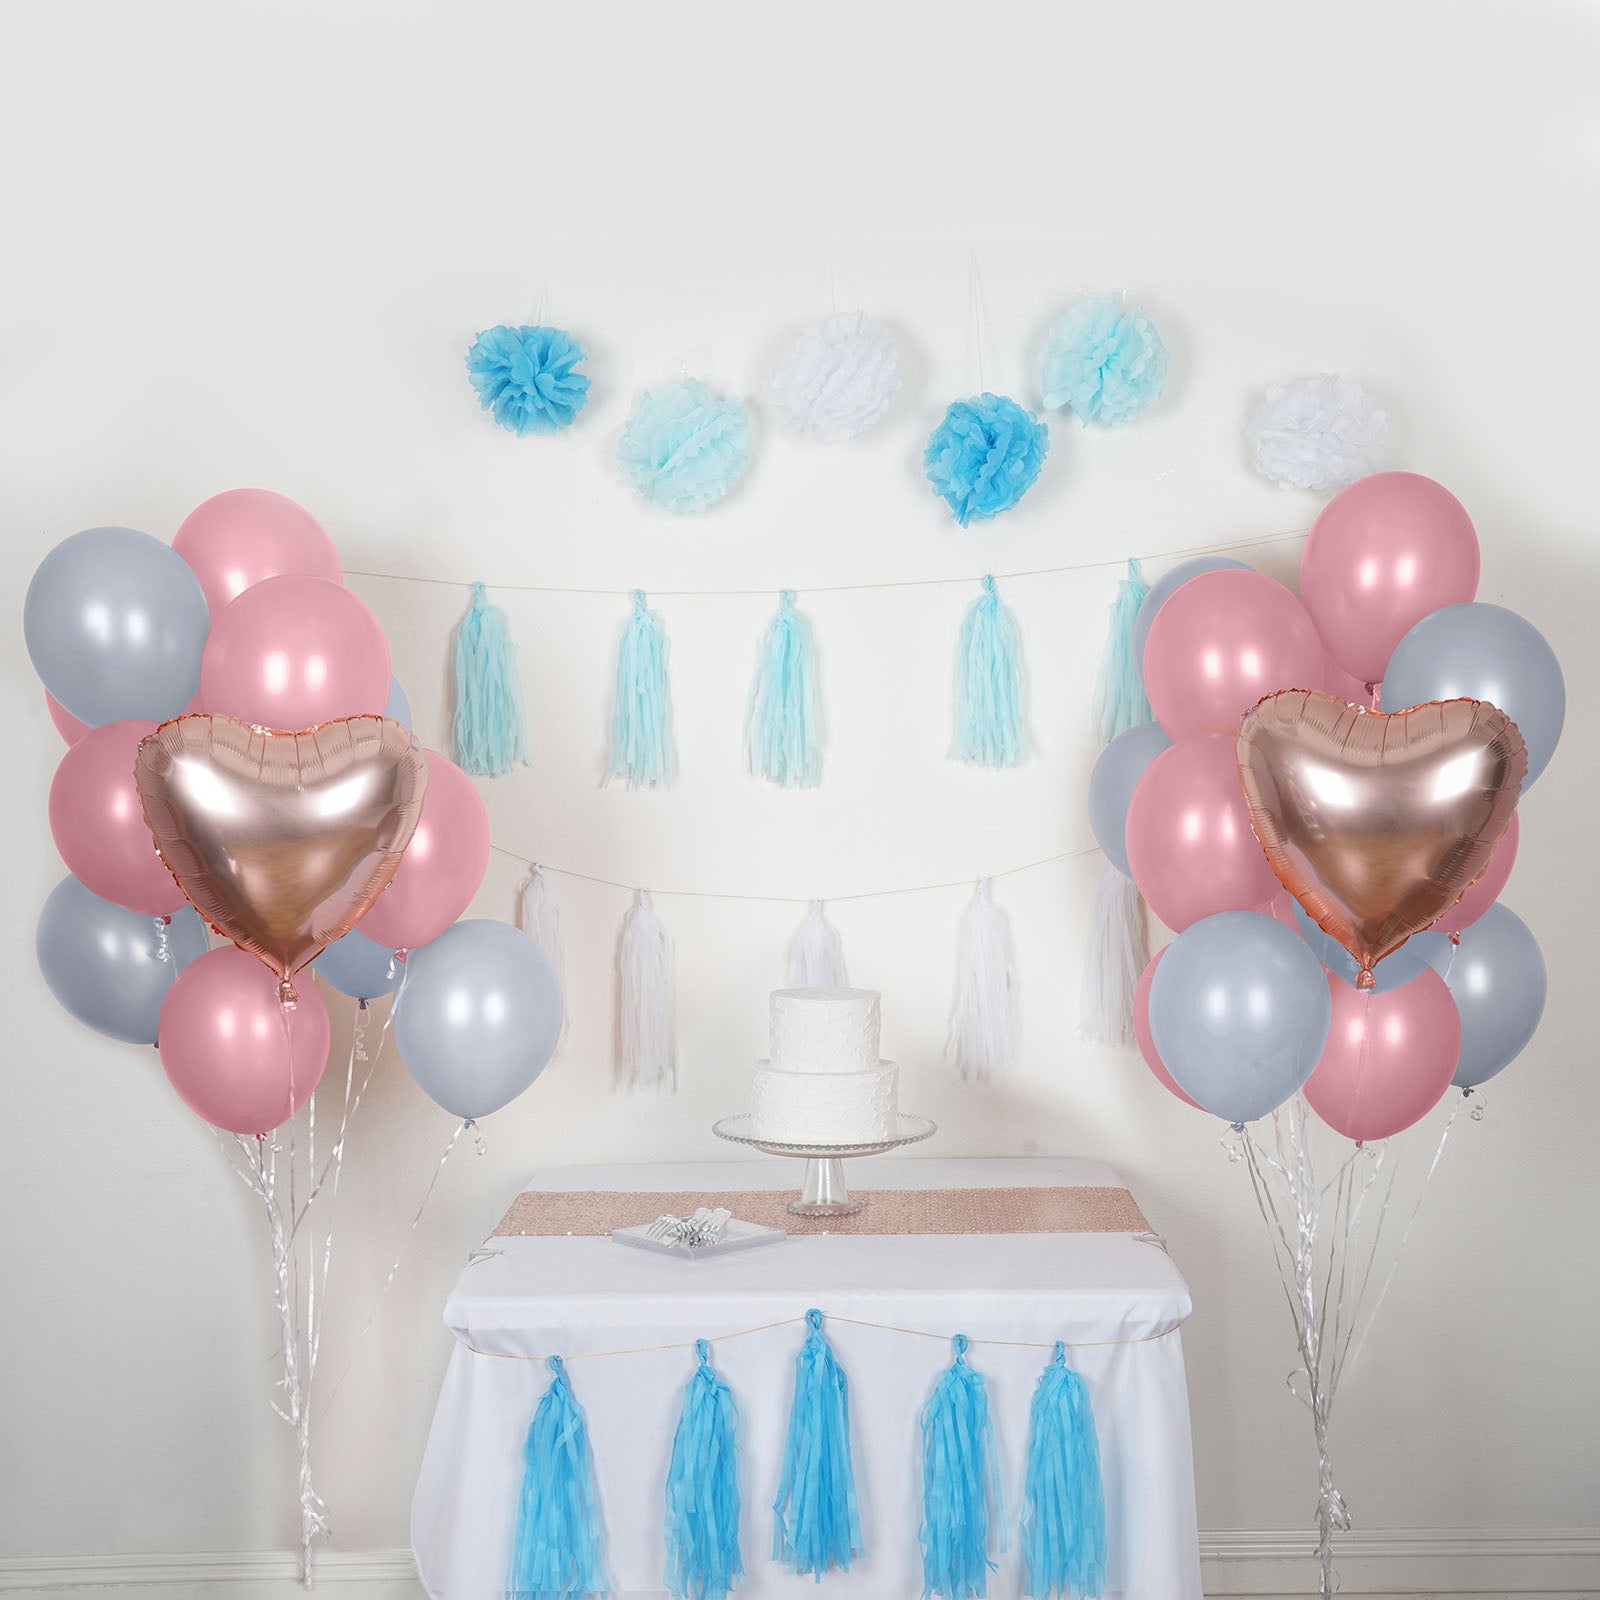 47 Pcs Blue White Decoration Kit With Foil Latex Mylar Balloons Wholesale And Pom Tassels